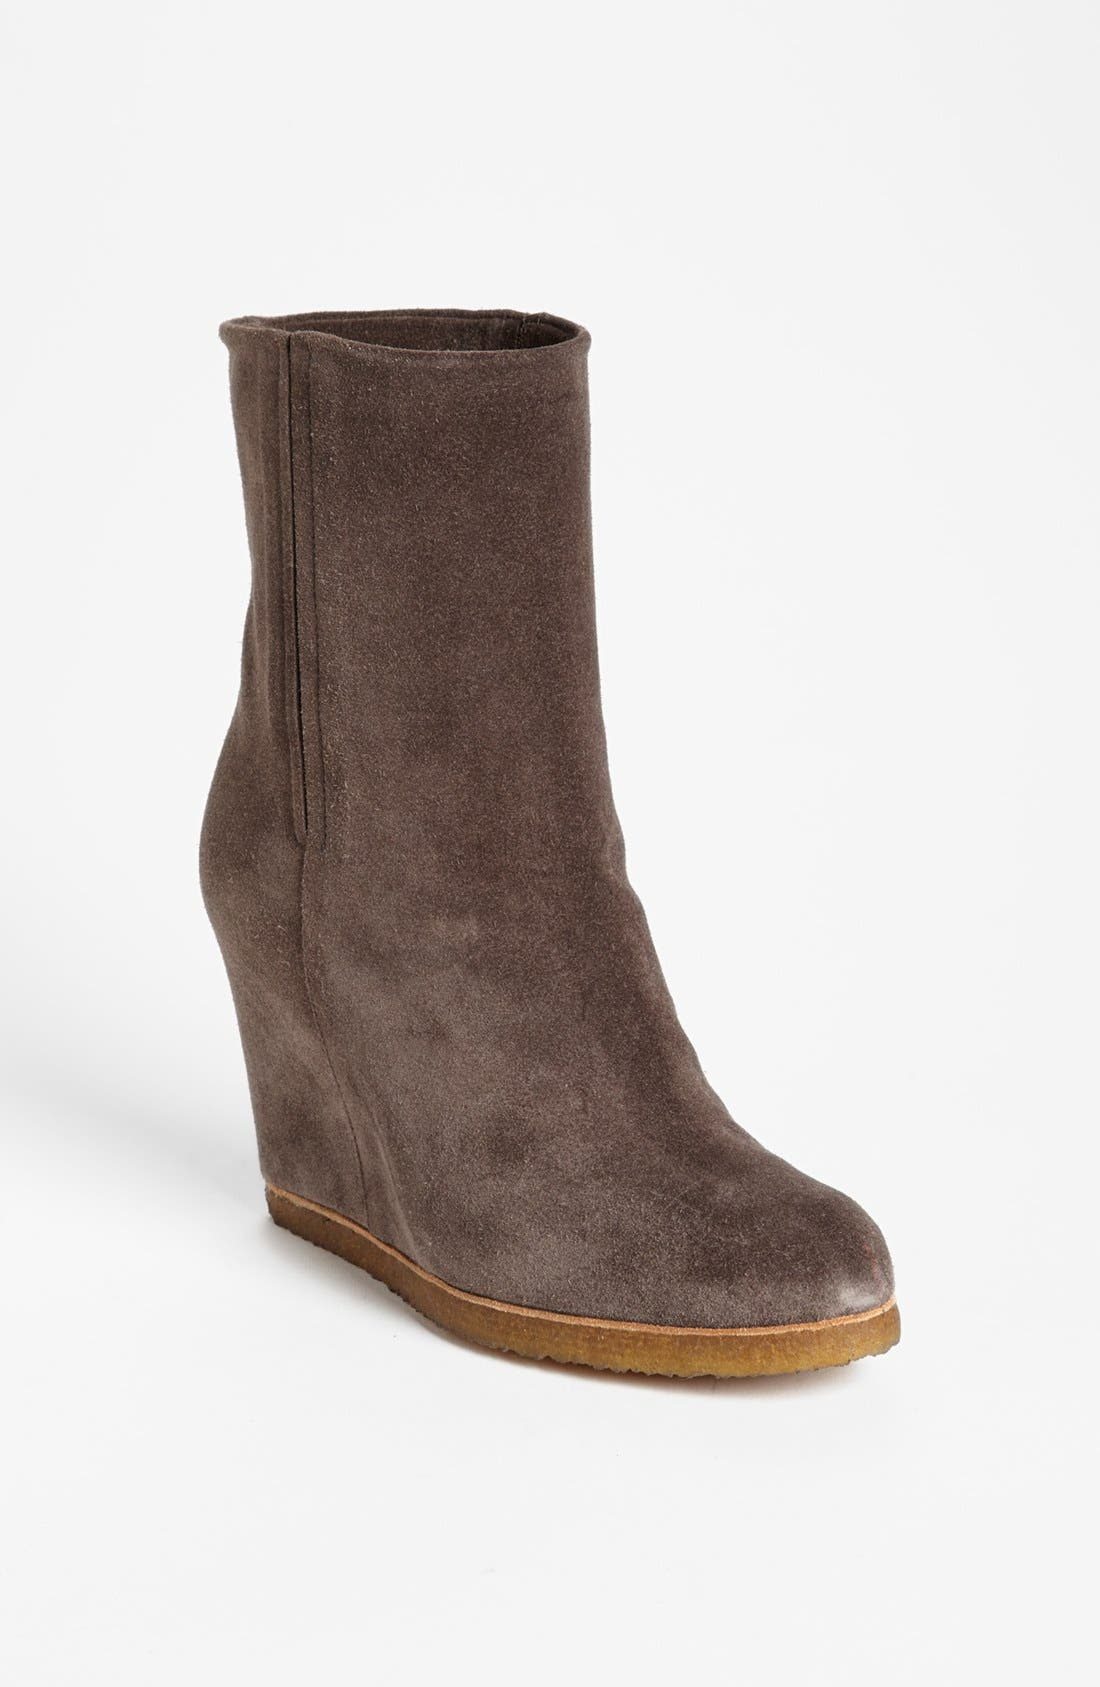 Main Image - Stuart Weitzman 'Bootscout' Boot